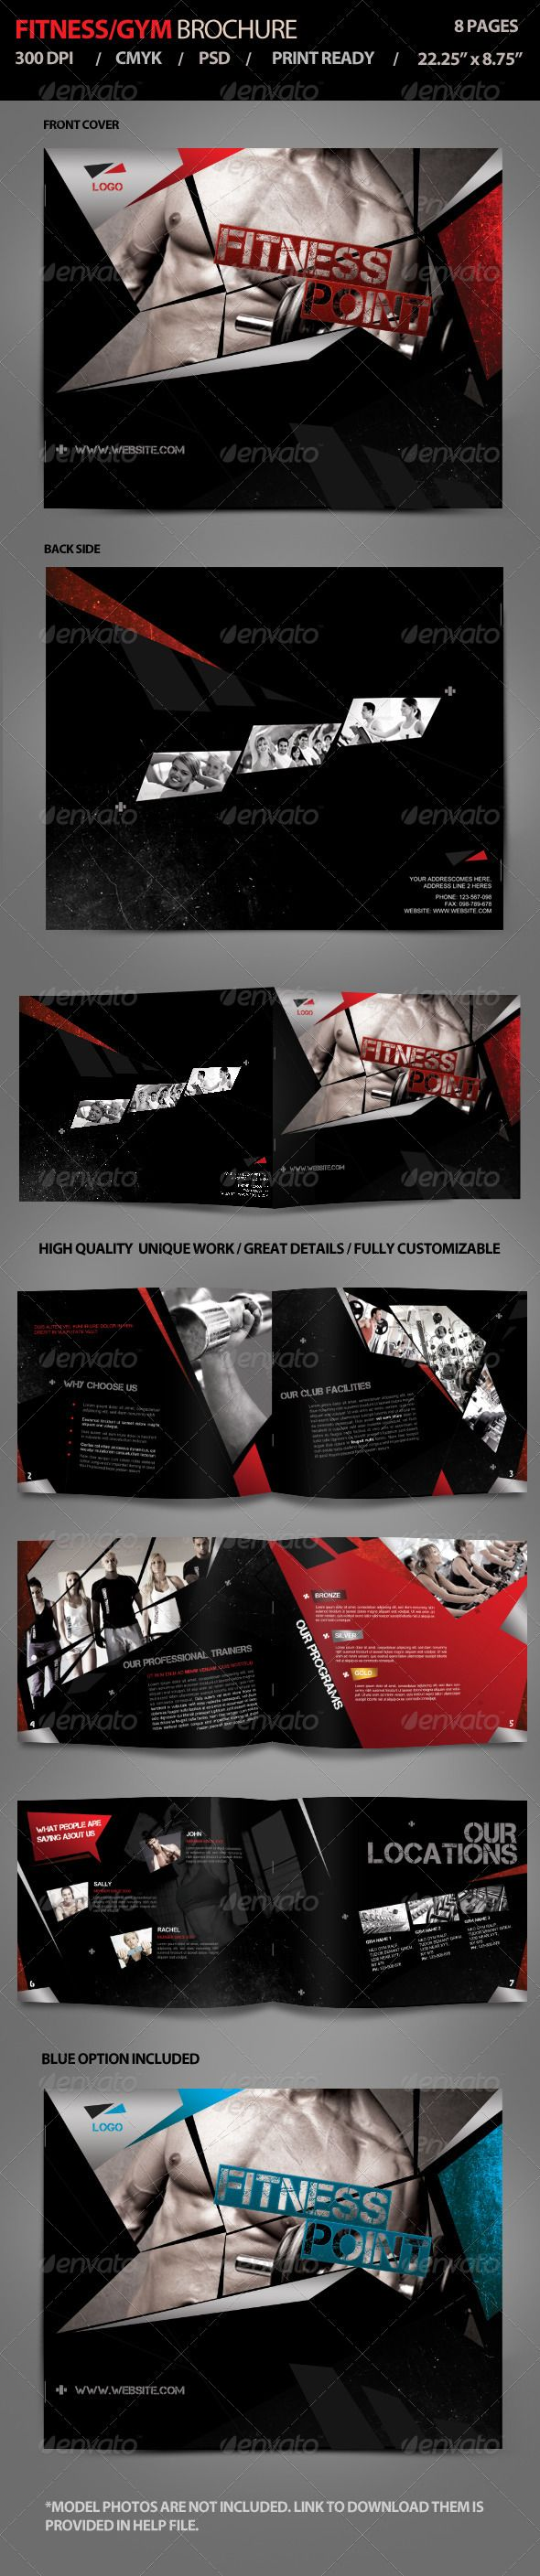 Fitness  Gym Brochure Vol  Brochures Gym And Print Templates